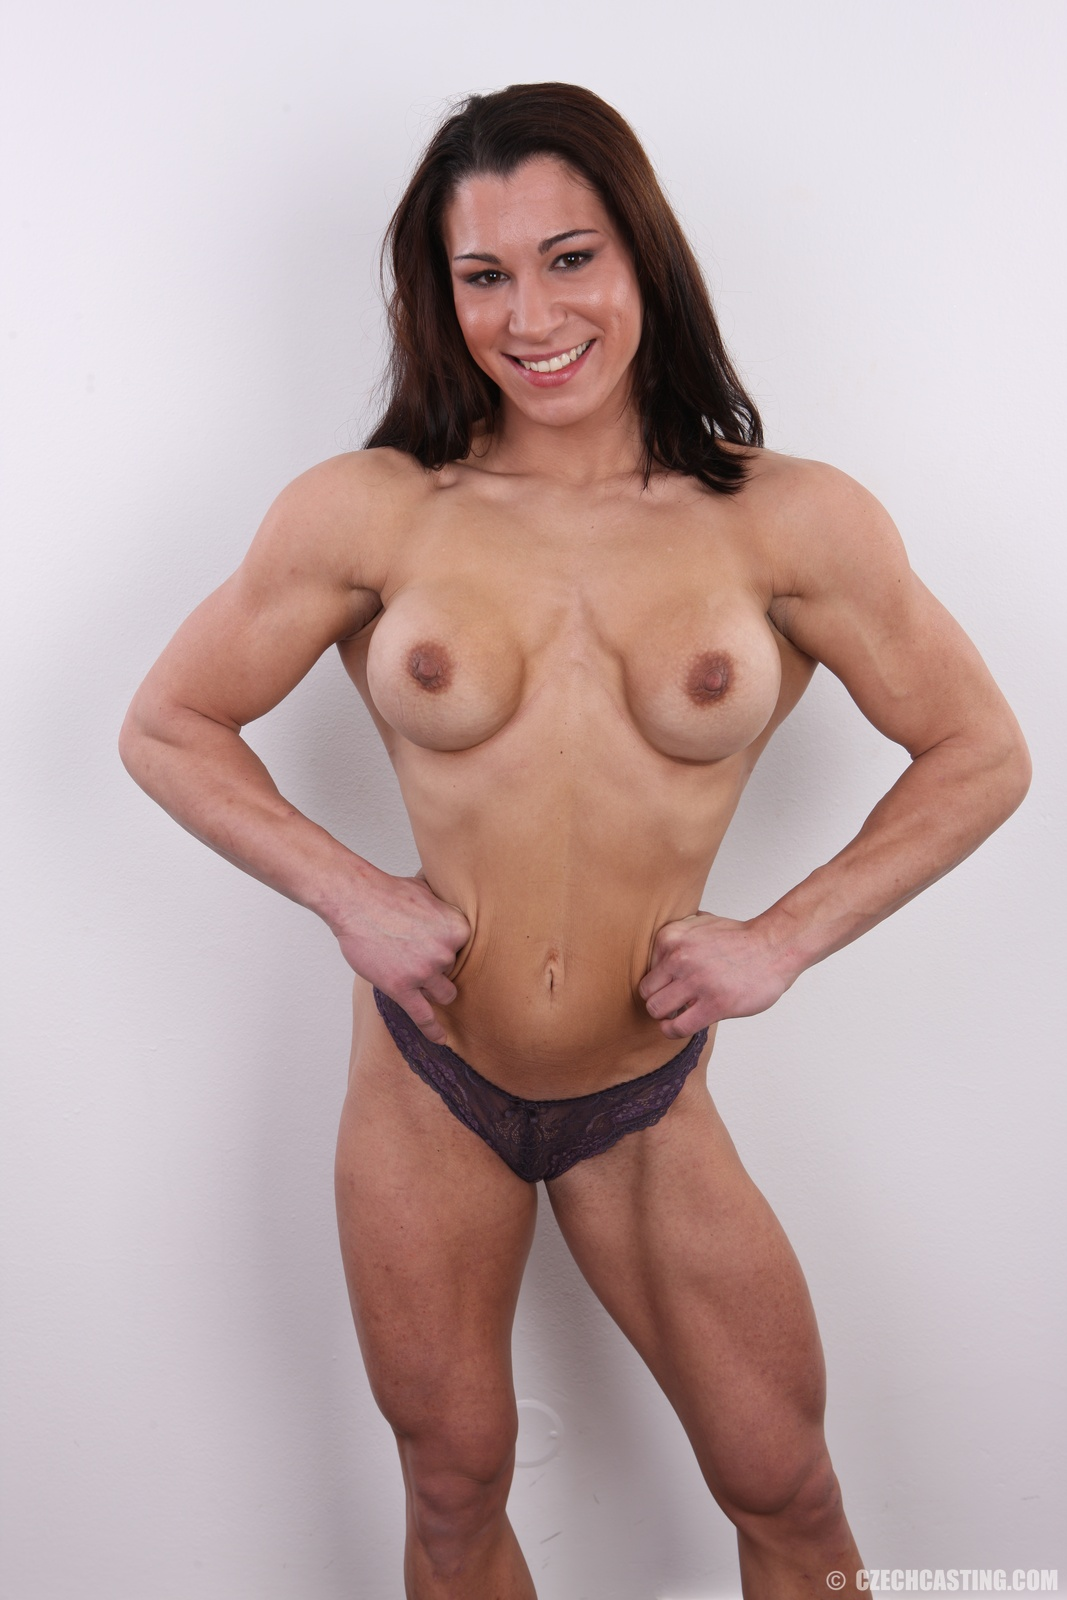 Beautiful brunette natural perky tits